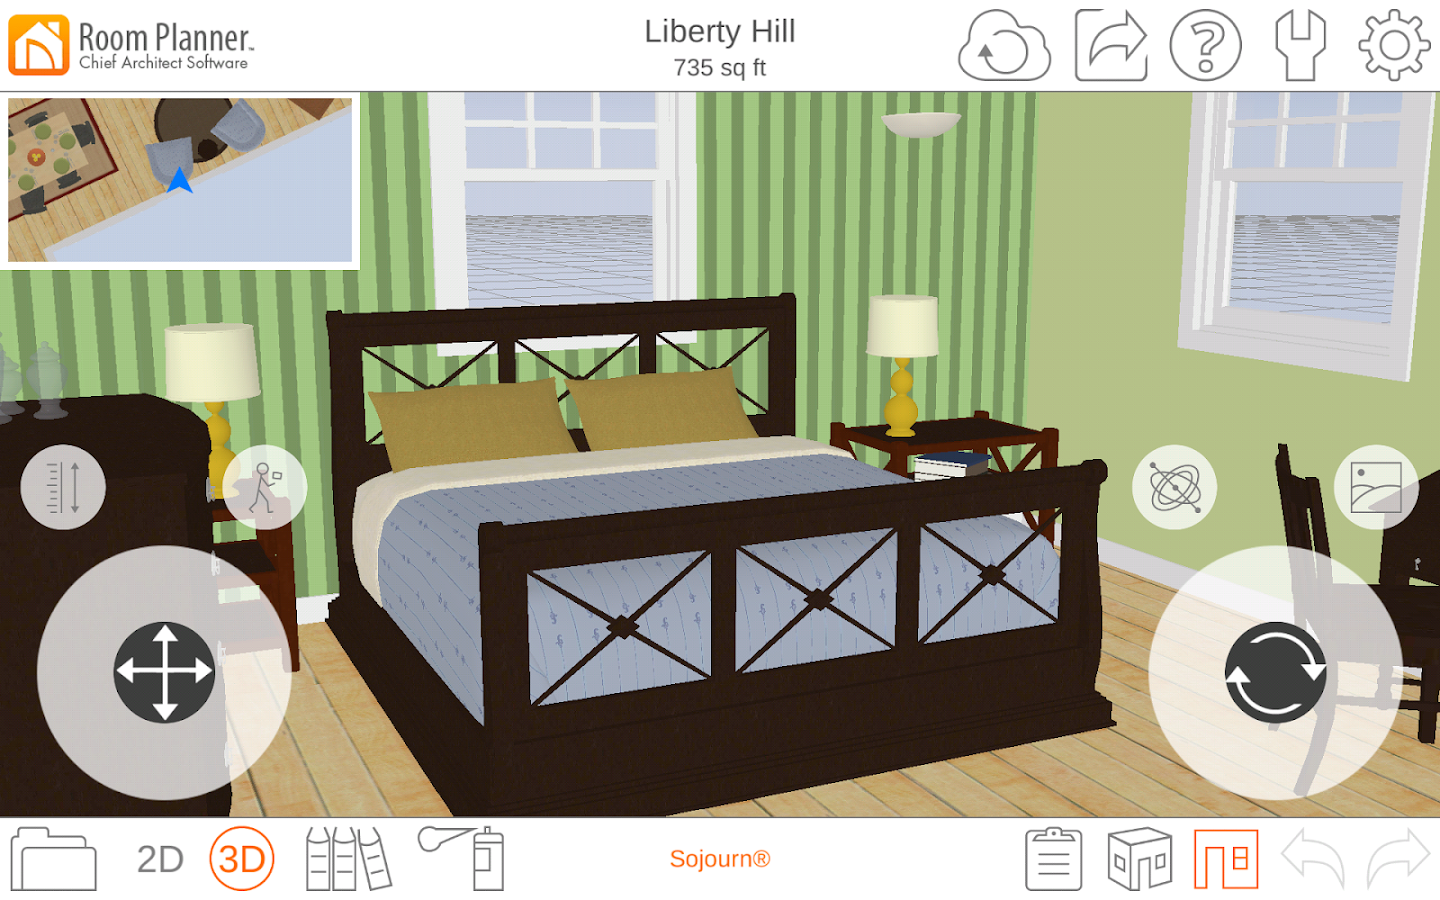 Room Planner LE Home Design 4.3.0 APK Download - Android ...